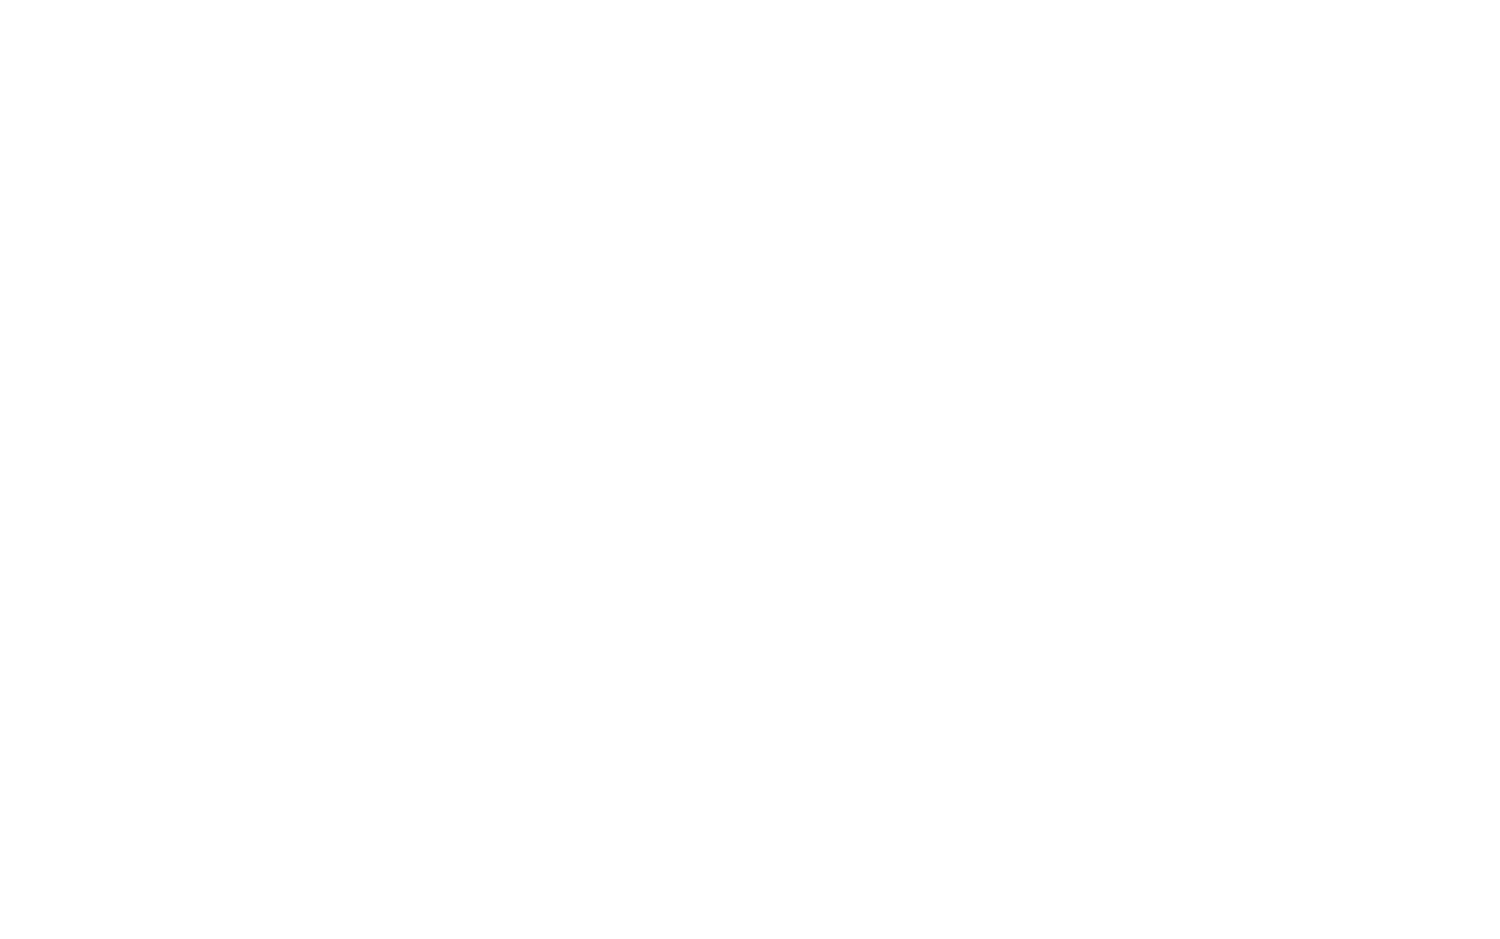 Dutch Cabinet Company – True Amish Craftsmanship + Quality Cabinetry + Affordable Work + Cabinet Maker